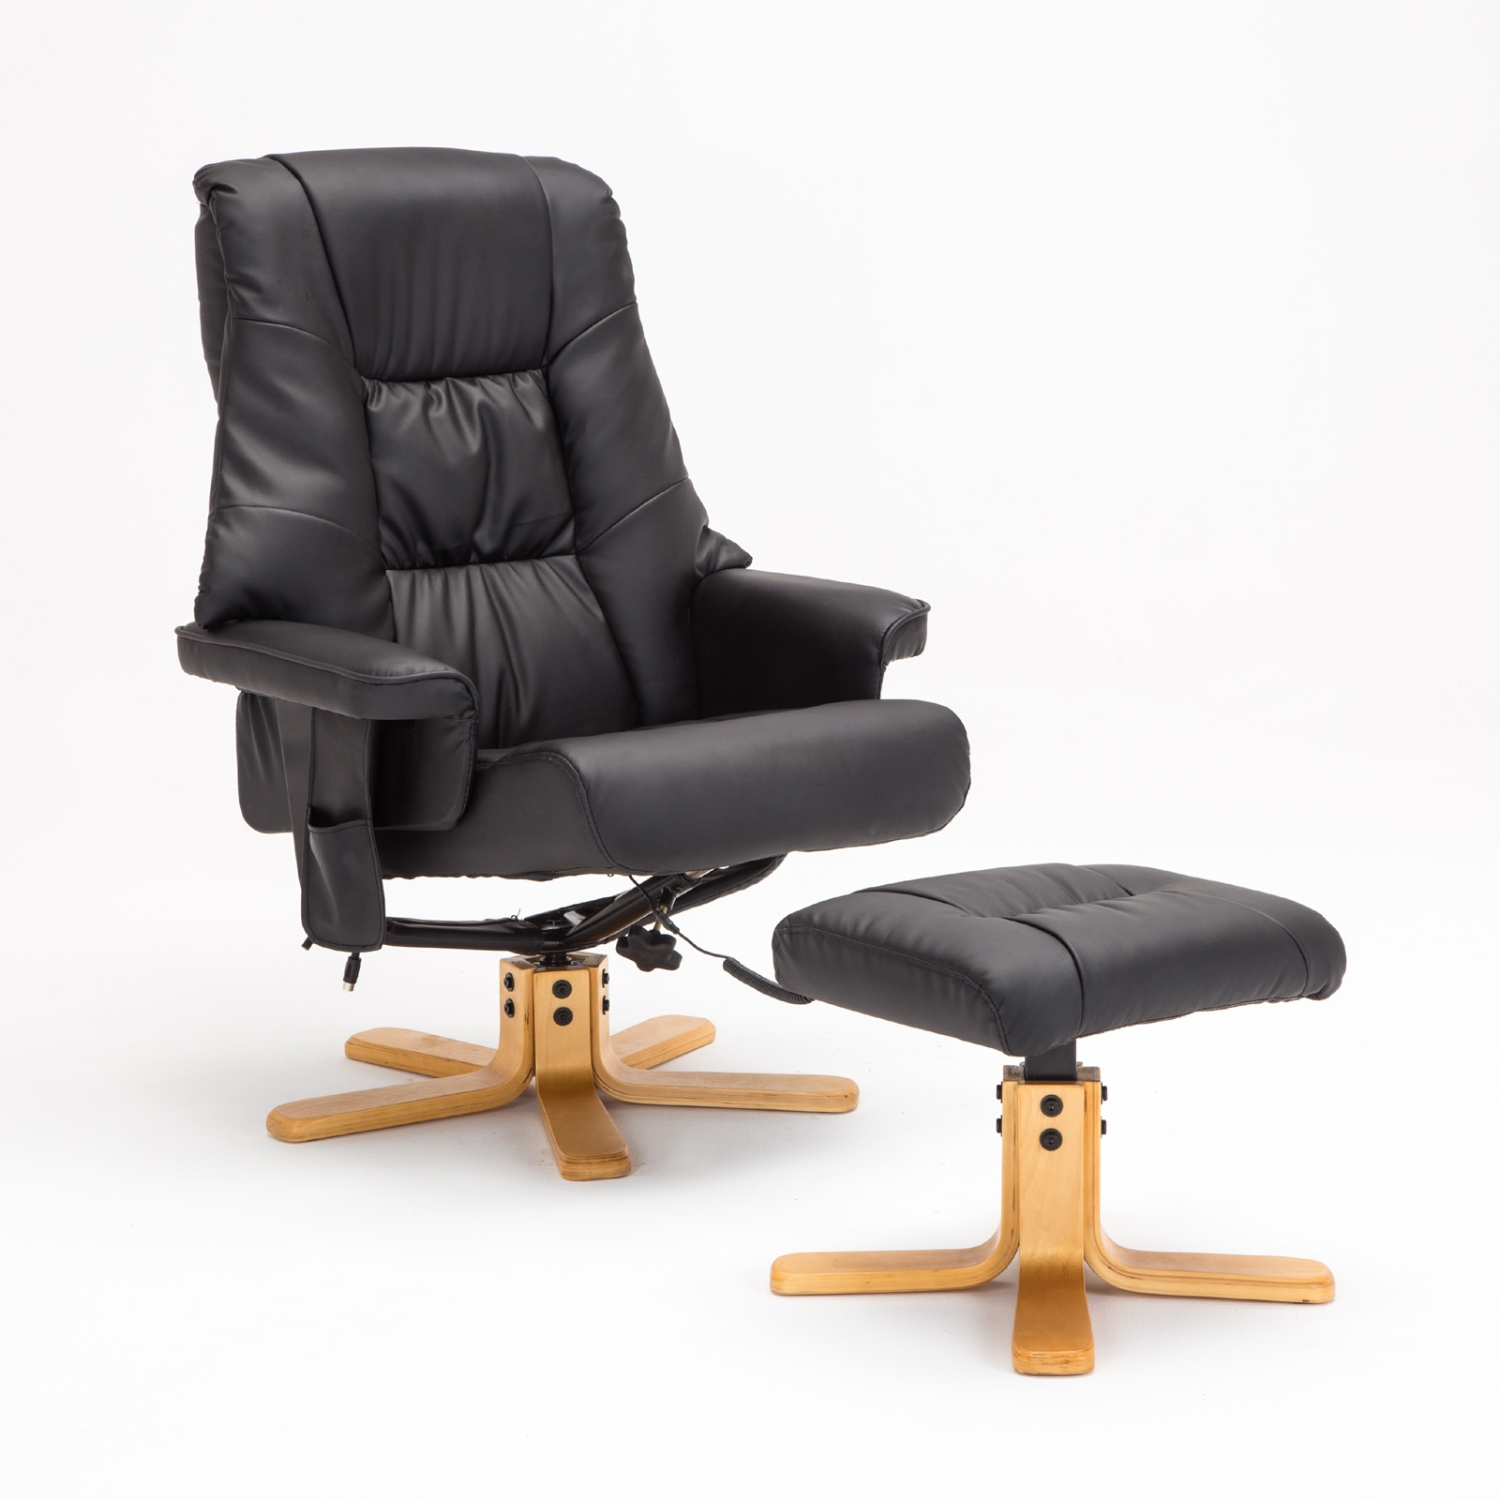 massage reclining chairs pics